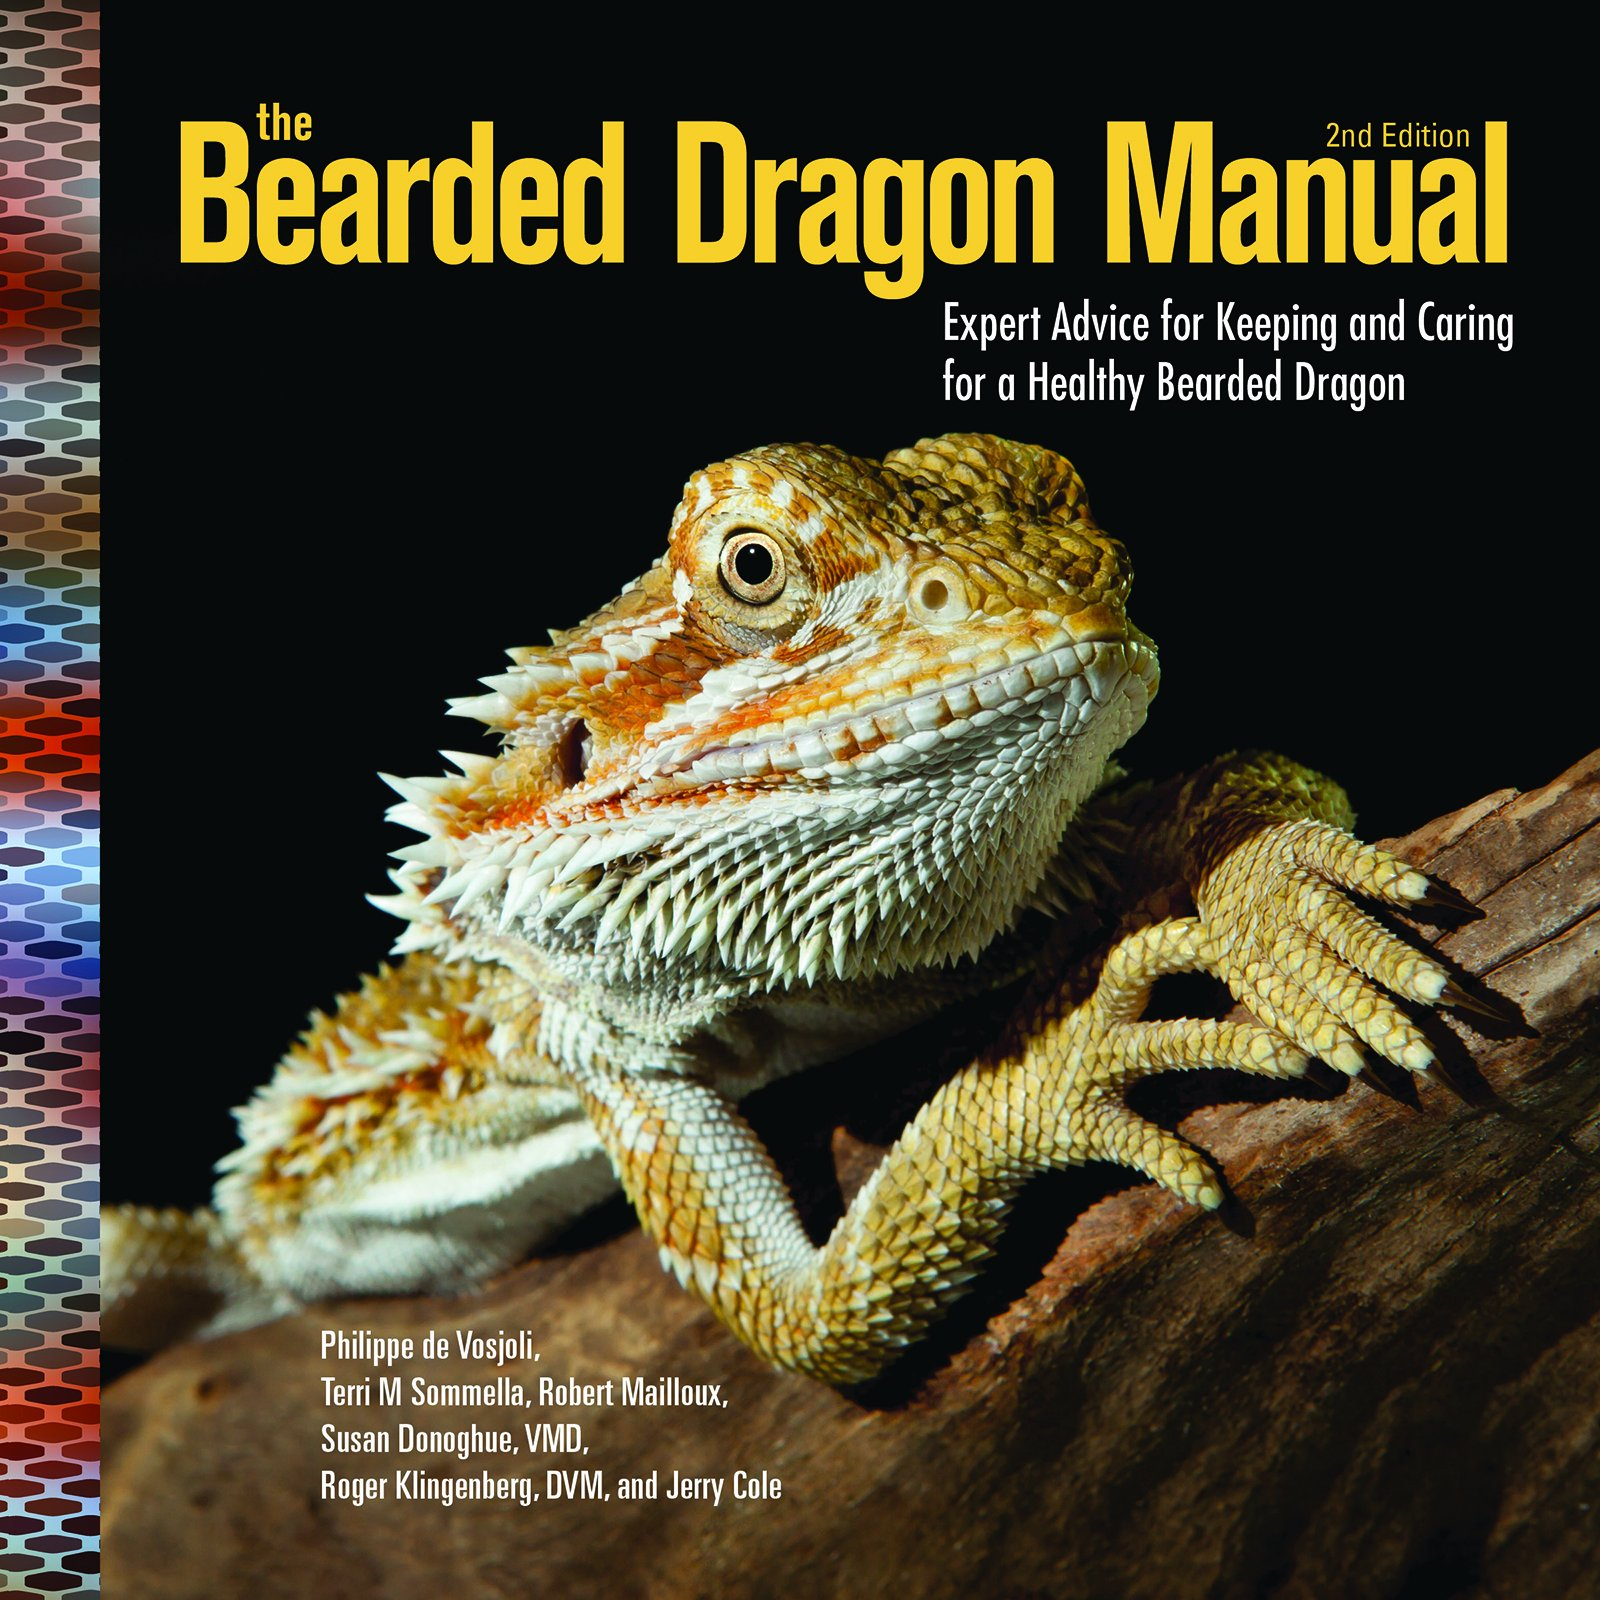 The Bearded Dragon Manual: Expert Advice for Keeping and Caring For a Healthy Bearded Dragon